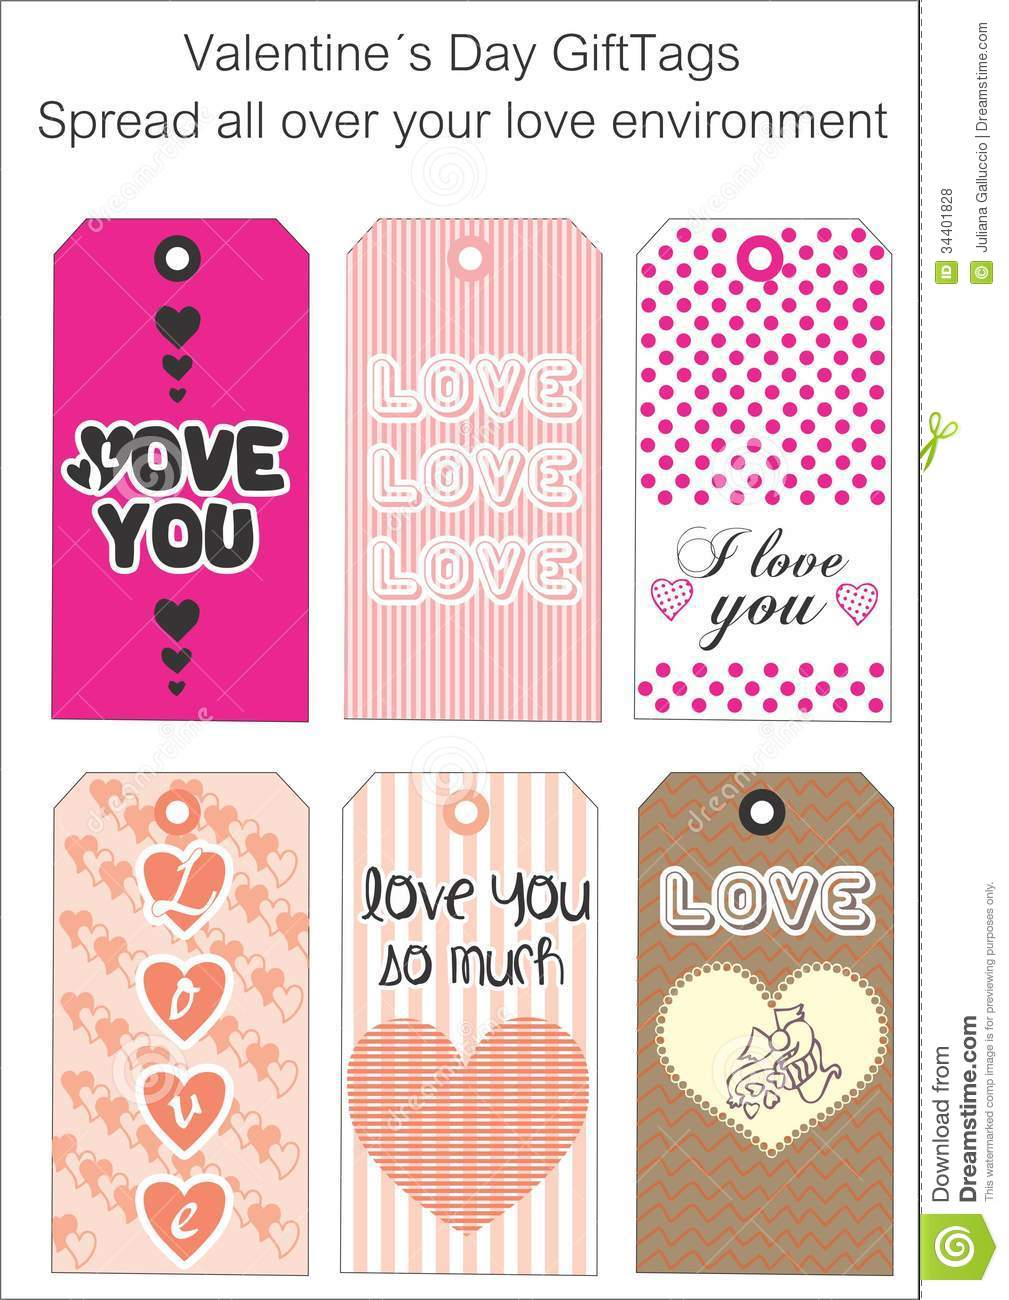 Printable Art Love Gift Tags for Valentine´s day or any lovely ...